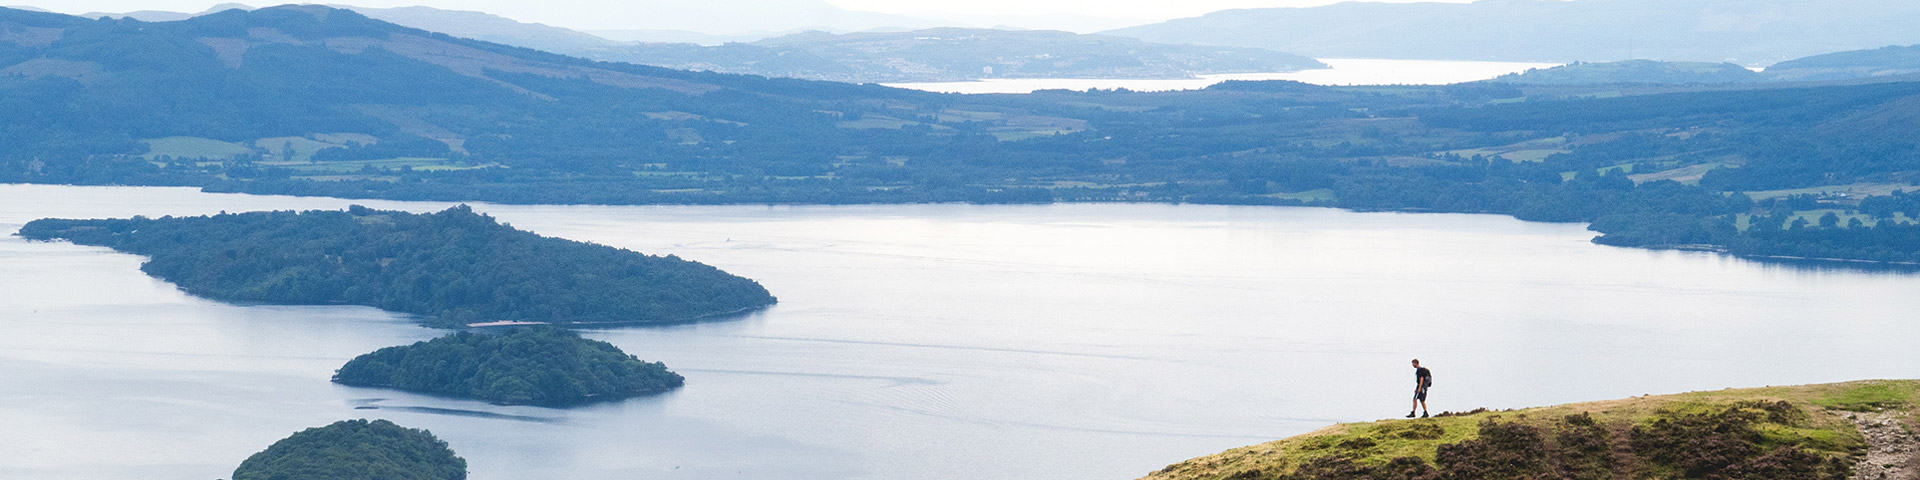 Conic Hill, The Trossachs National Park